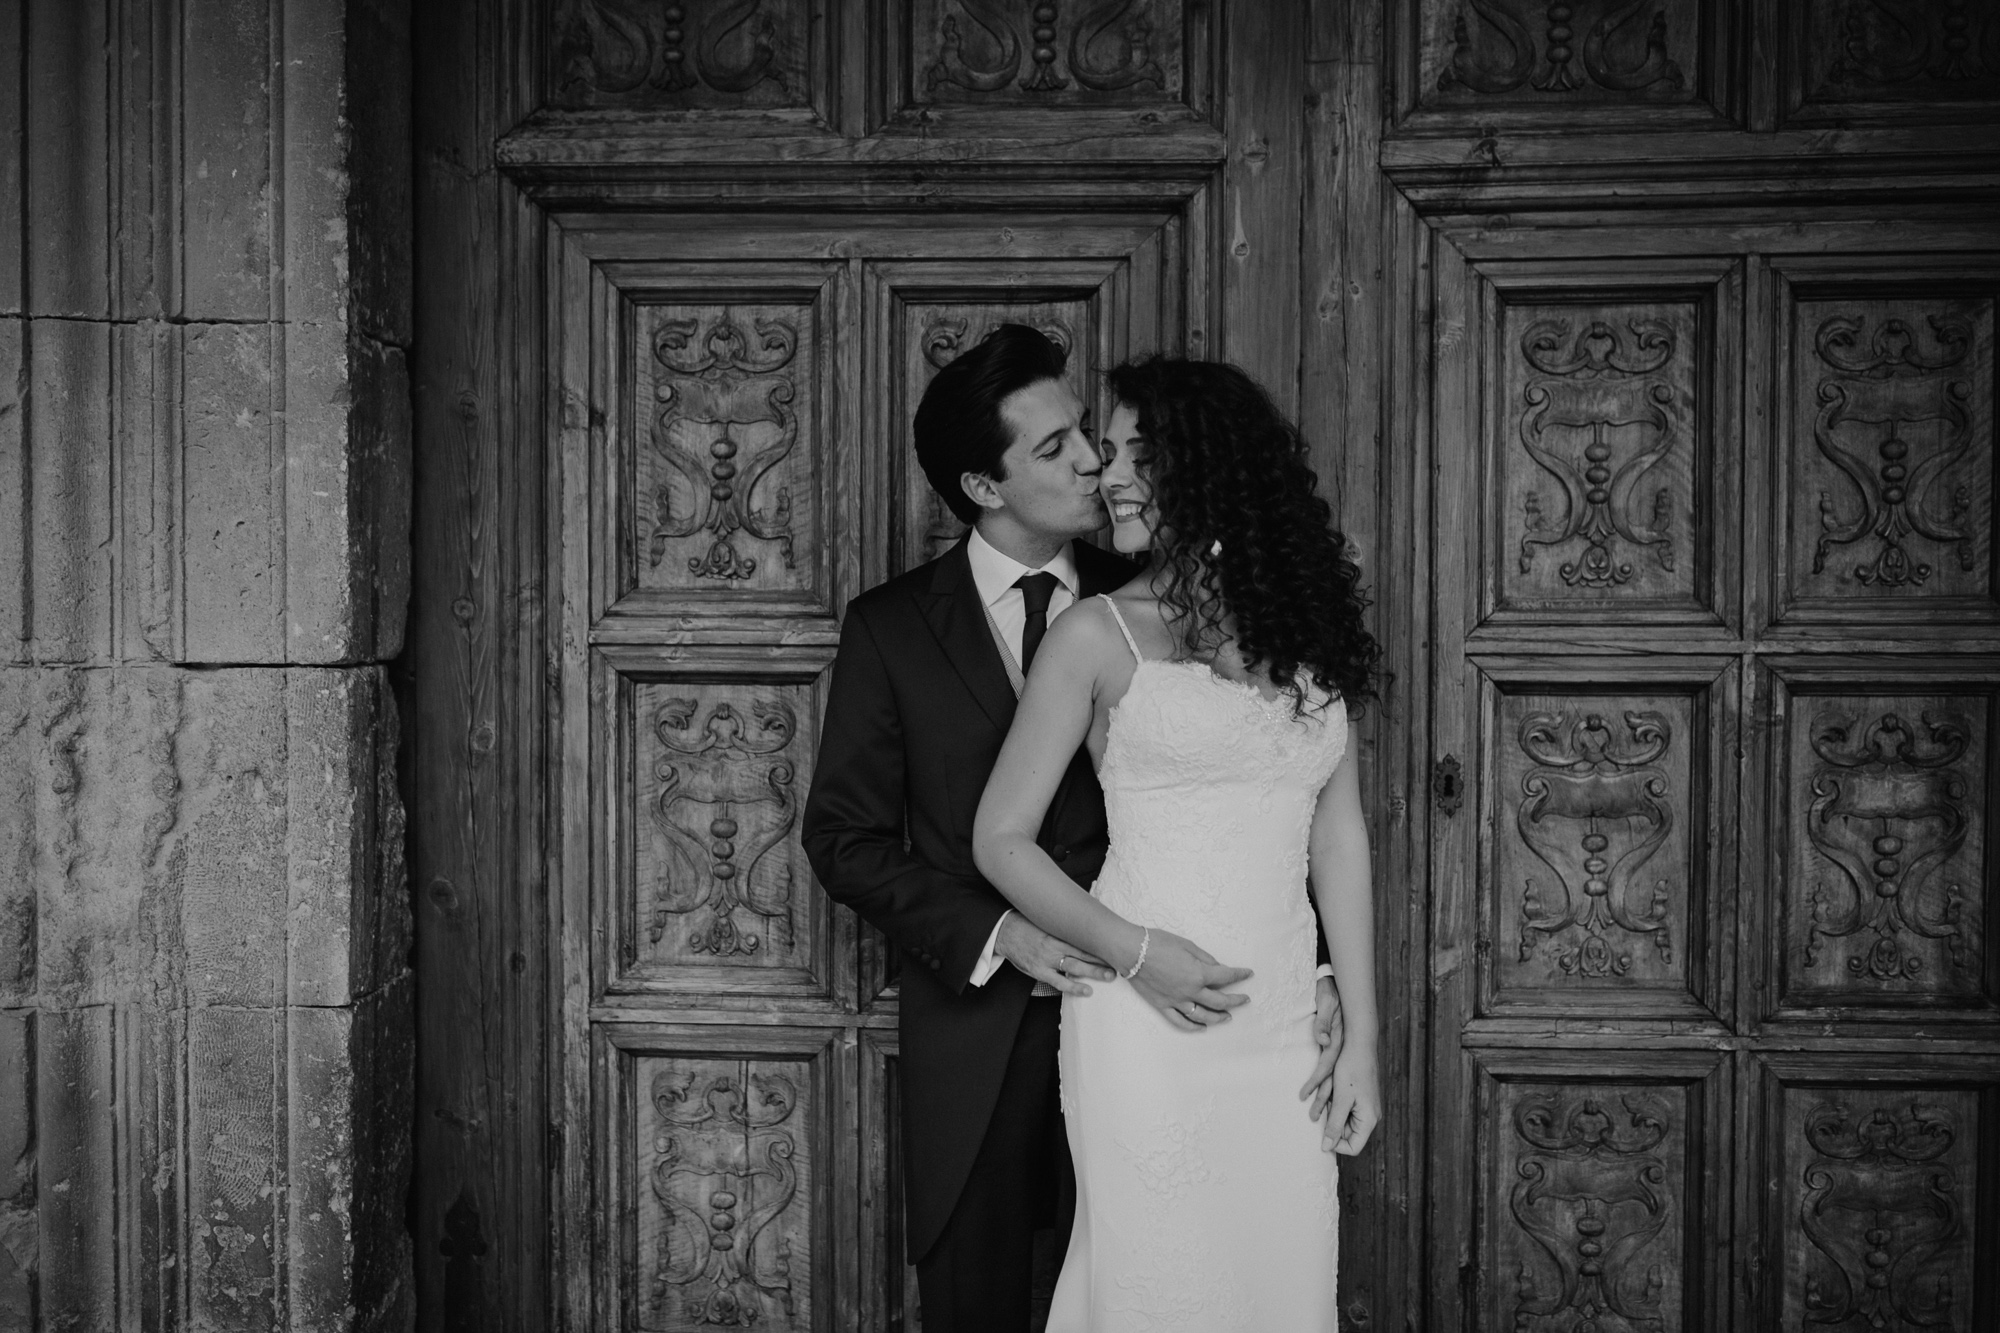 wedding photos alhambra, photographer granada, cristina ruiz foto